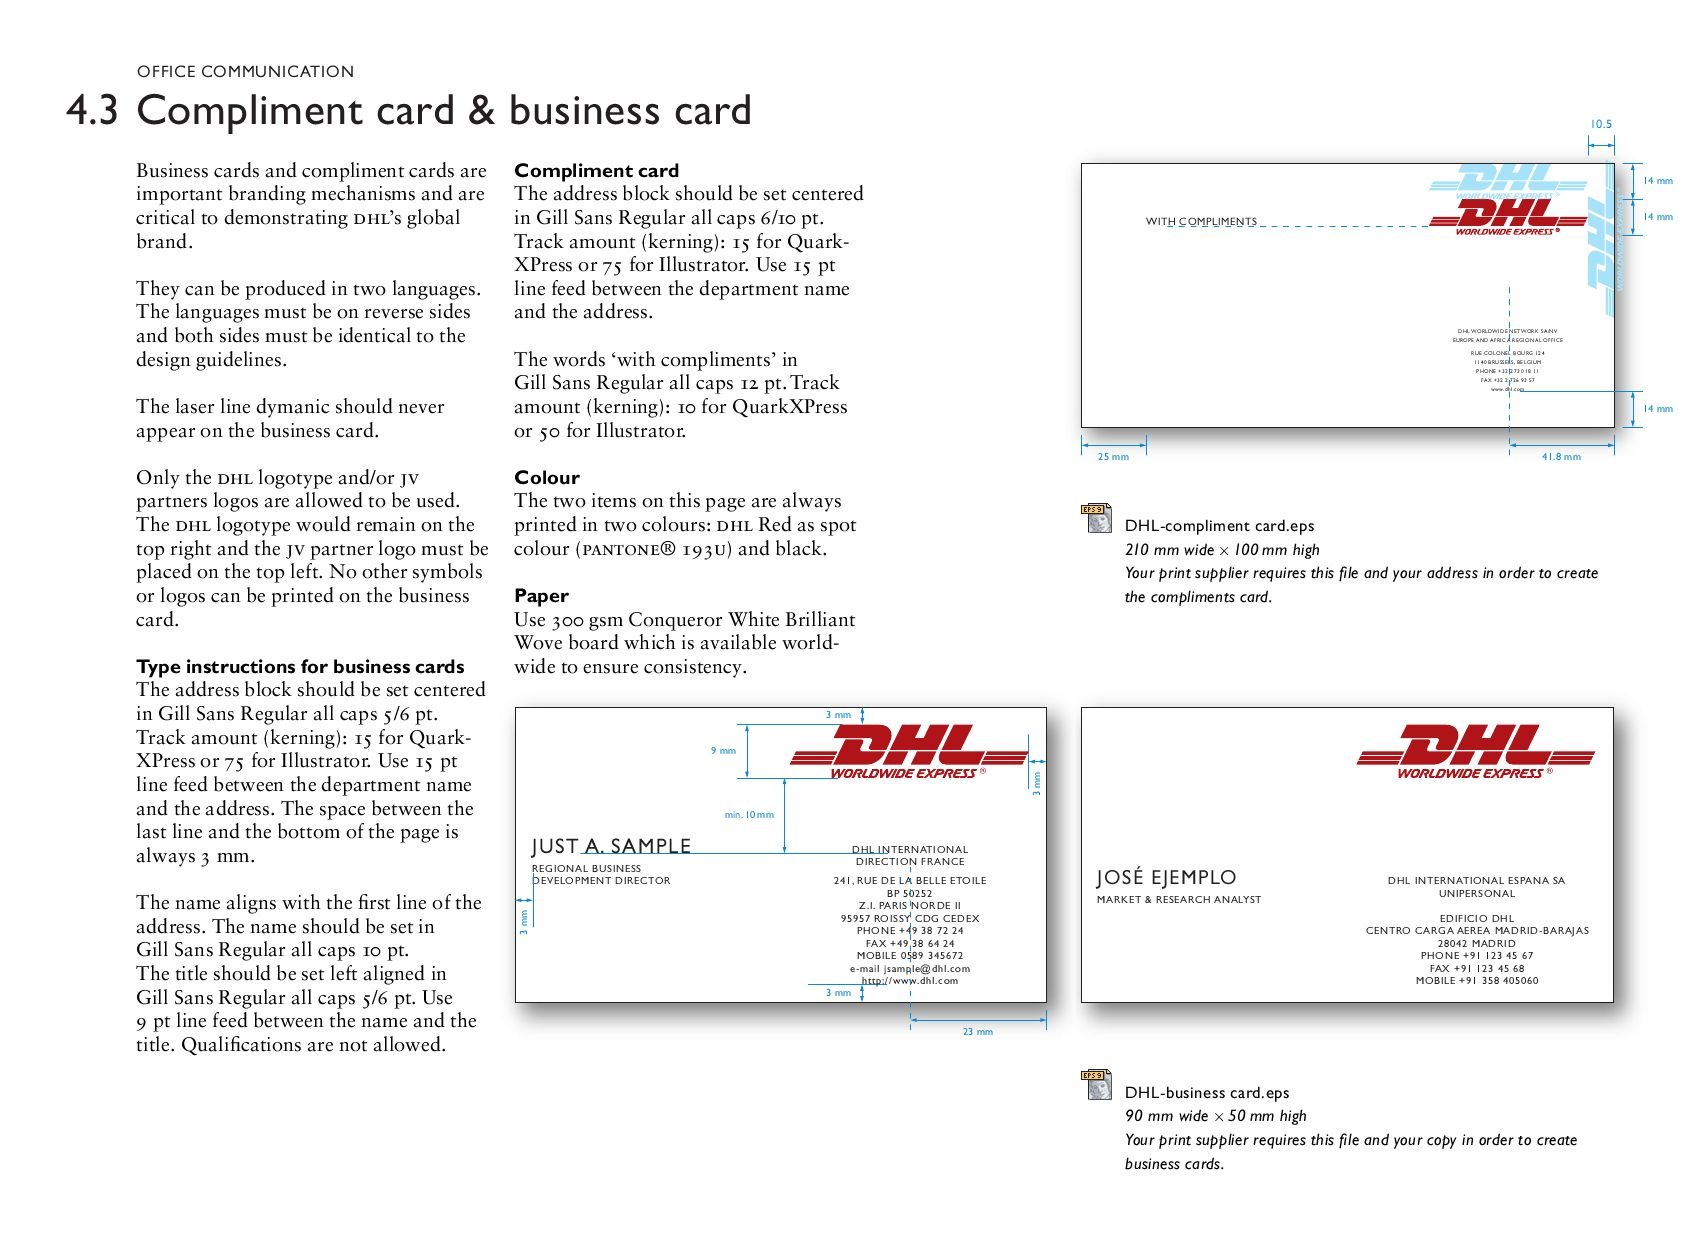 Dhl guidelines by gabychev alex issuu reheart Image collections